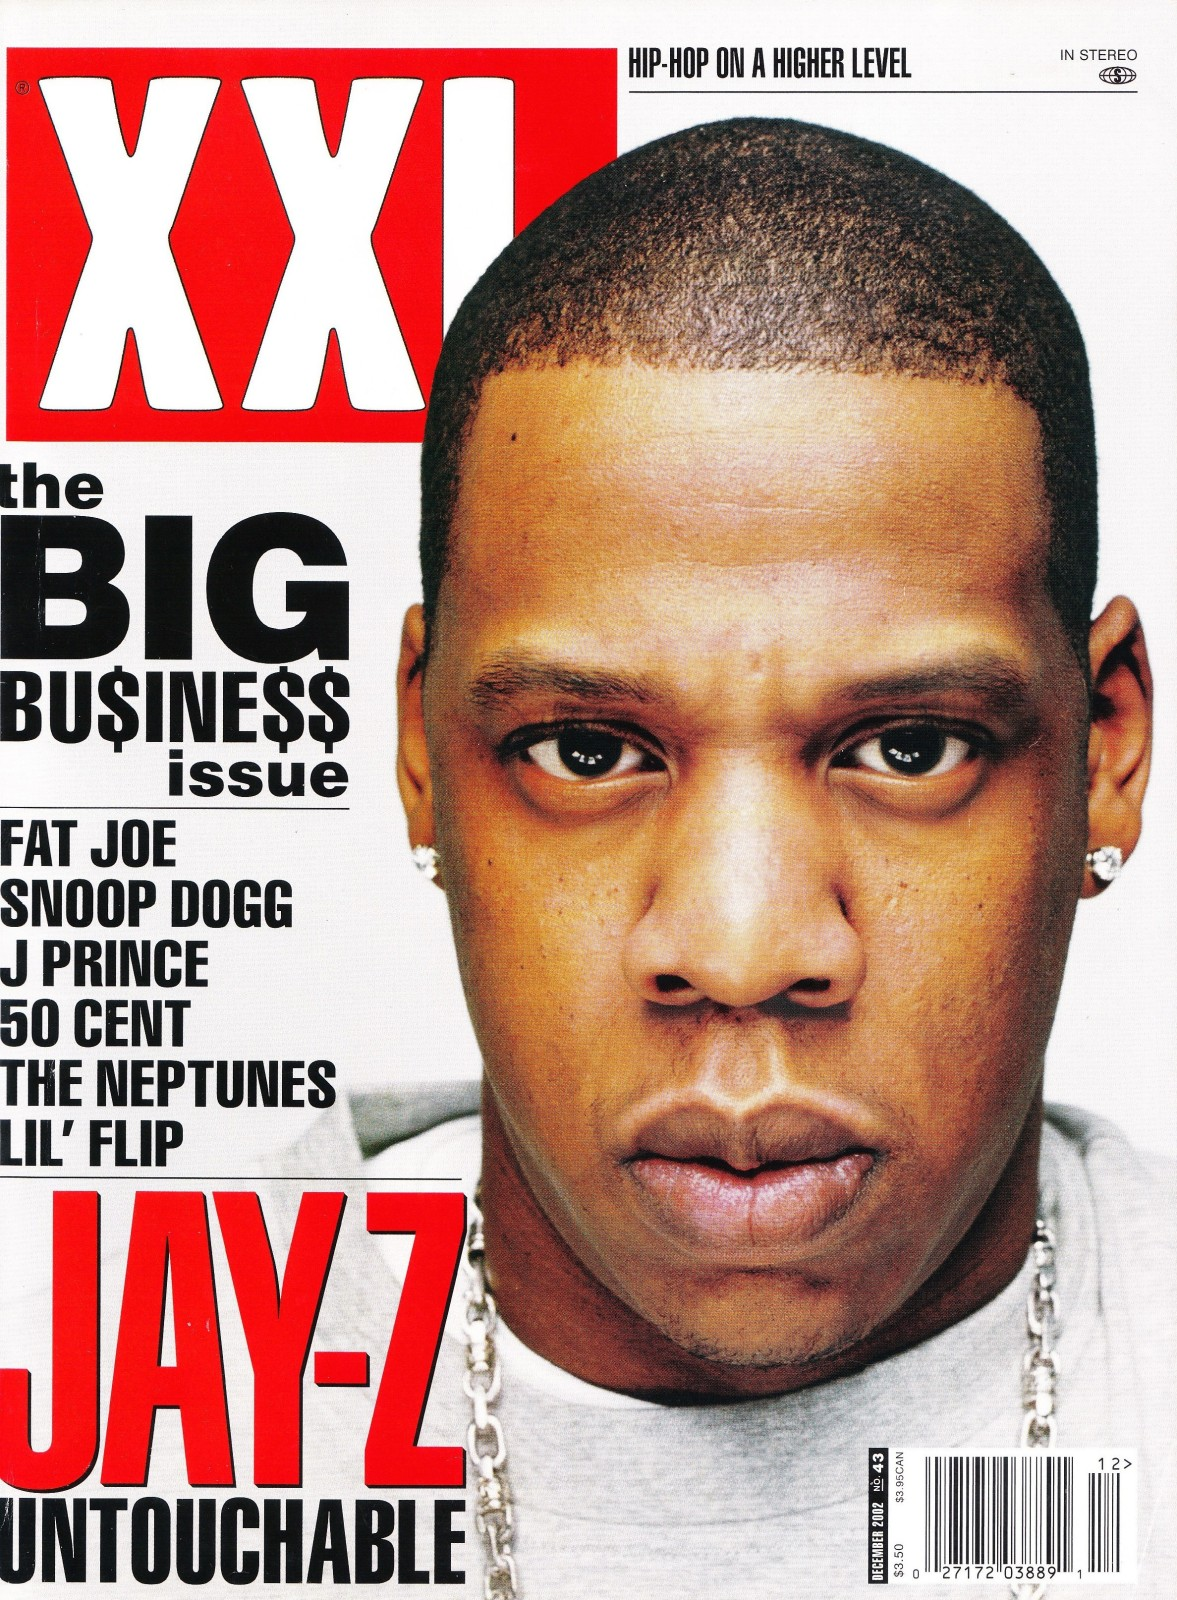 Dar hip hop jay zs the blueprint 2 the gift the curse blueprint 2 8 nigga please 9 2 many hoes 10 as one 11 a ballad for the fallen soldier 12 show you how 13 bitches and sisters malvernweather